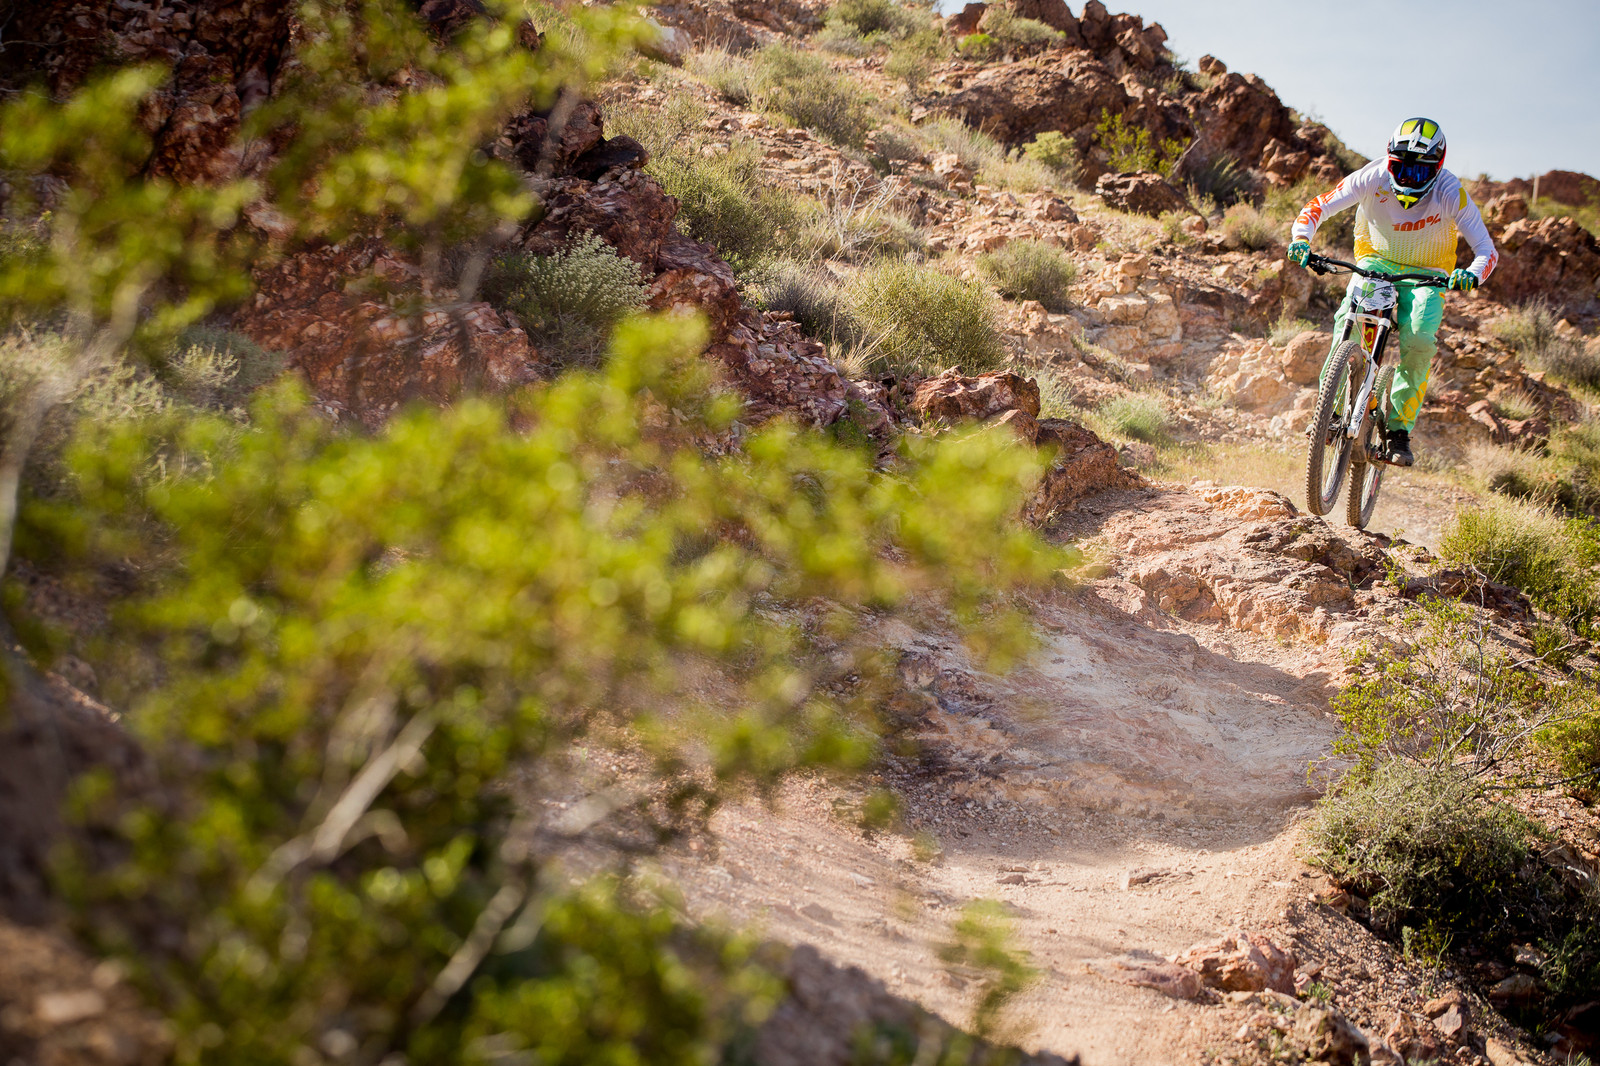 2017 Reaper Madness DH at Bootleg Canyon-13 - 2017 Reaper Madness DH Photos - Mountain Biking Pictures - Vital MTB